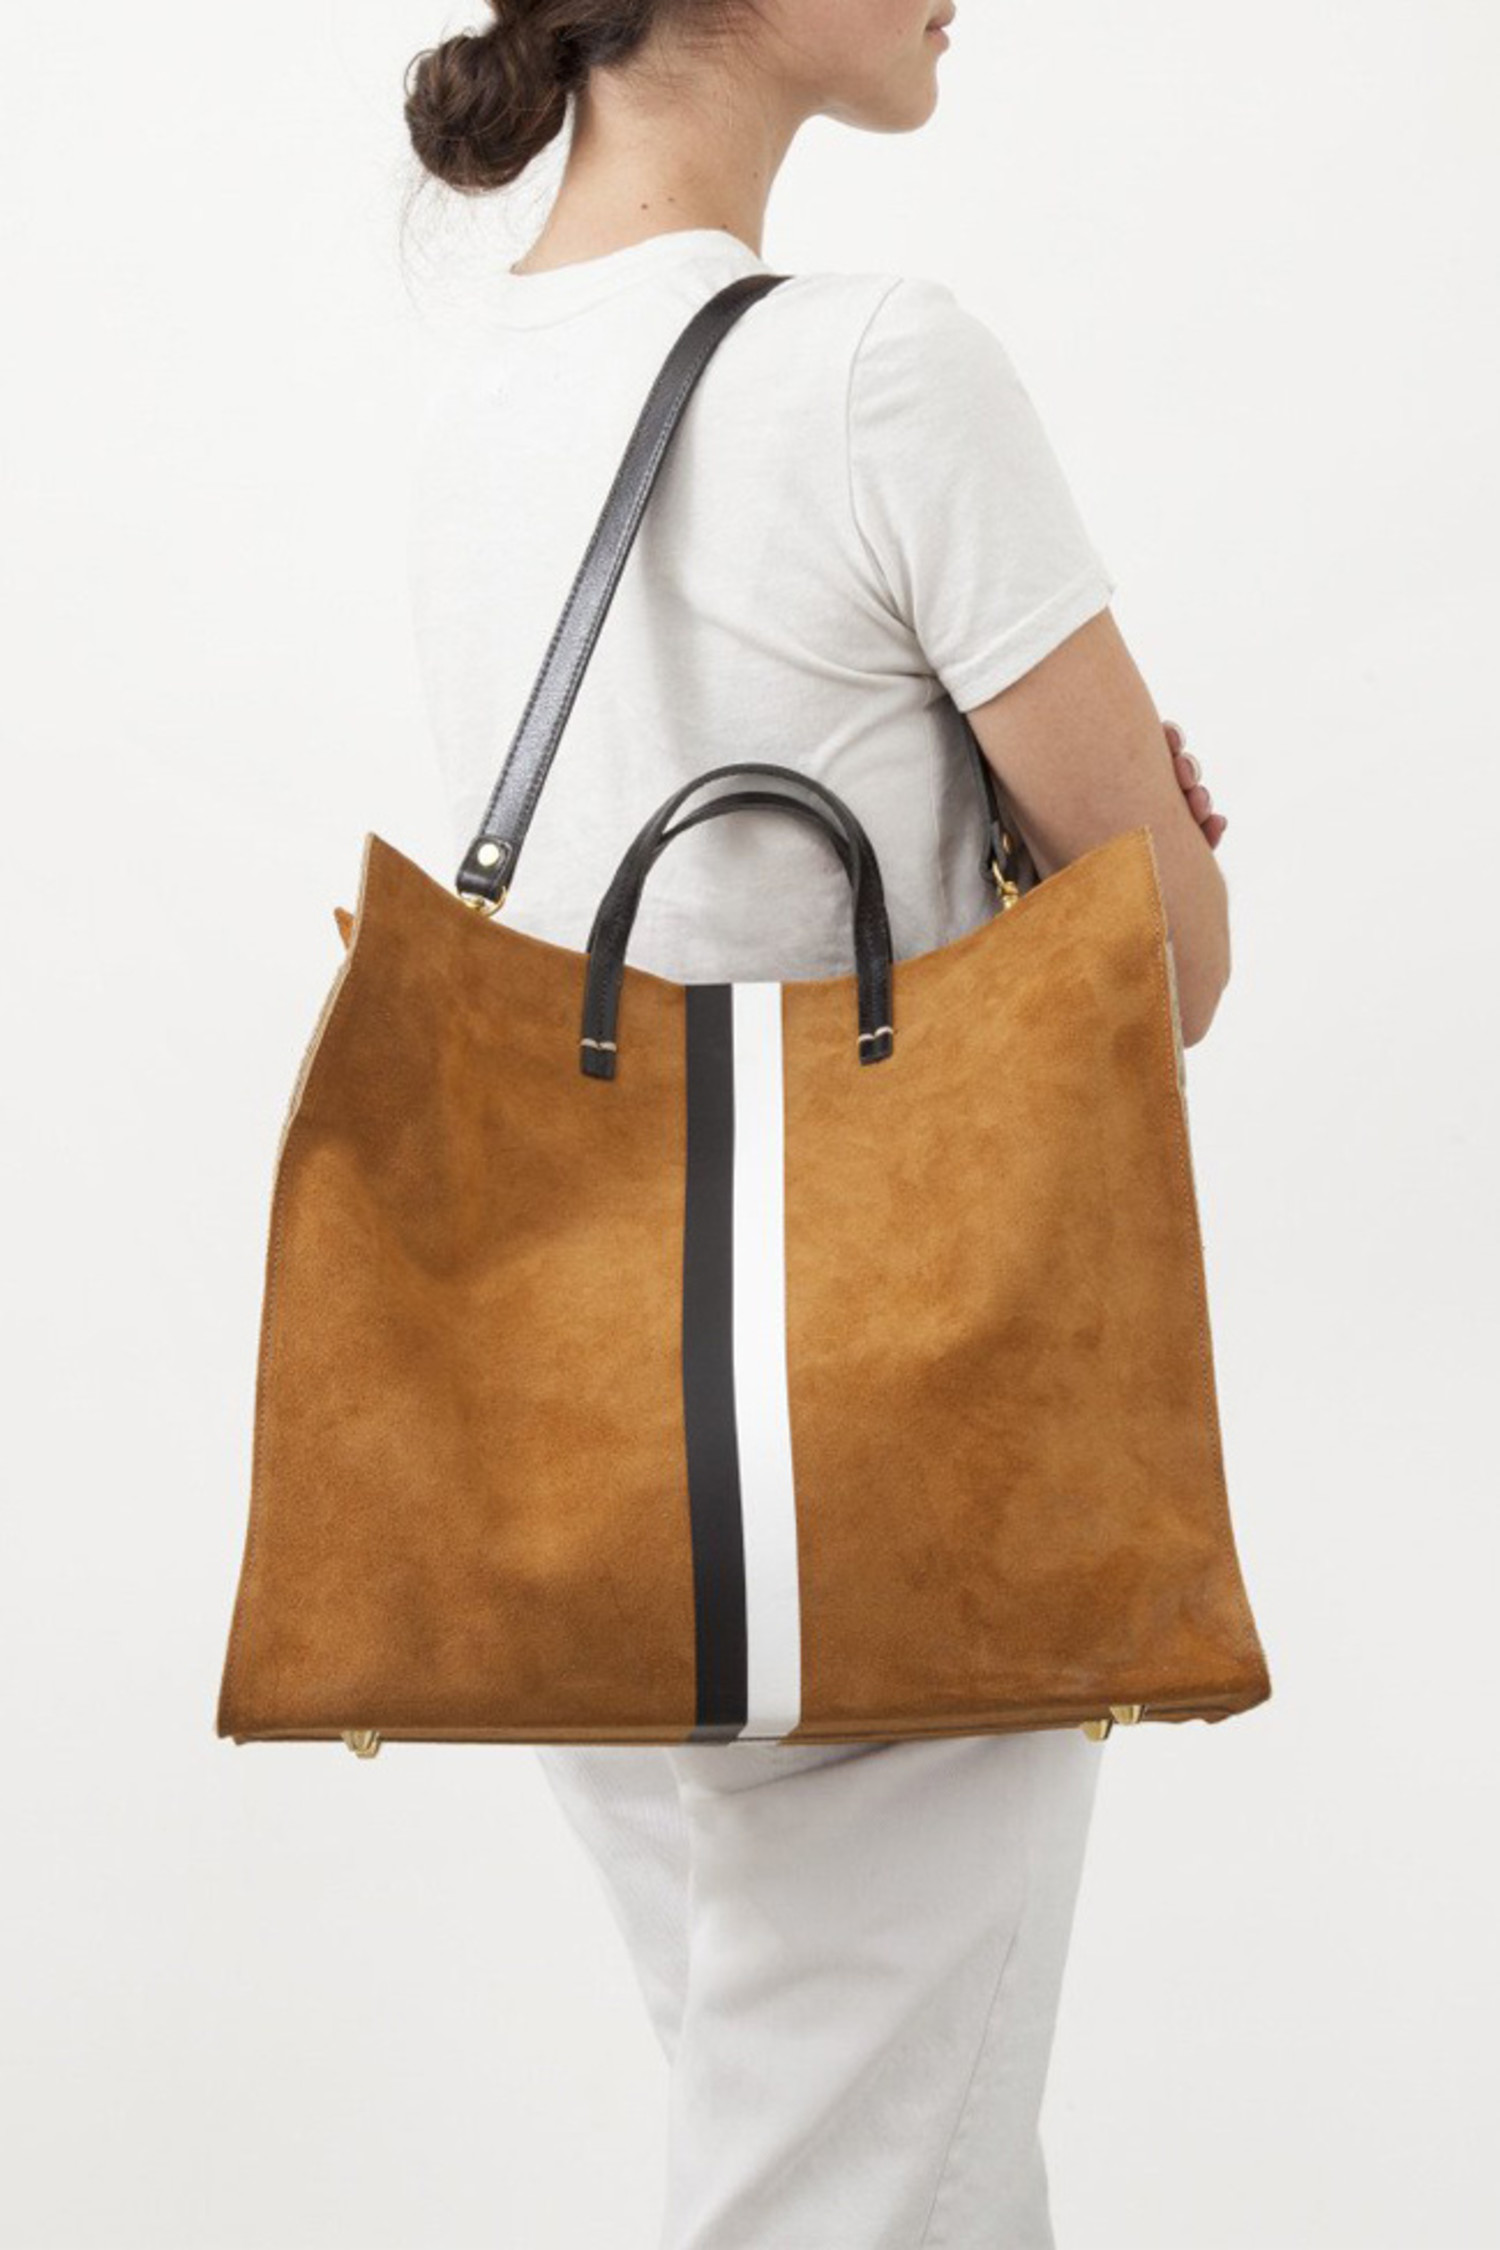 Clare V Simple Tote | Weekly Finds + Instagram's Most Popular Blanket is on Sale!